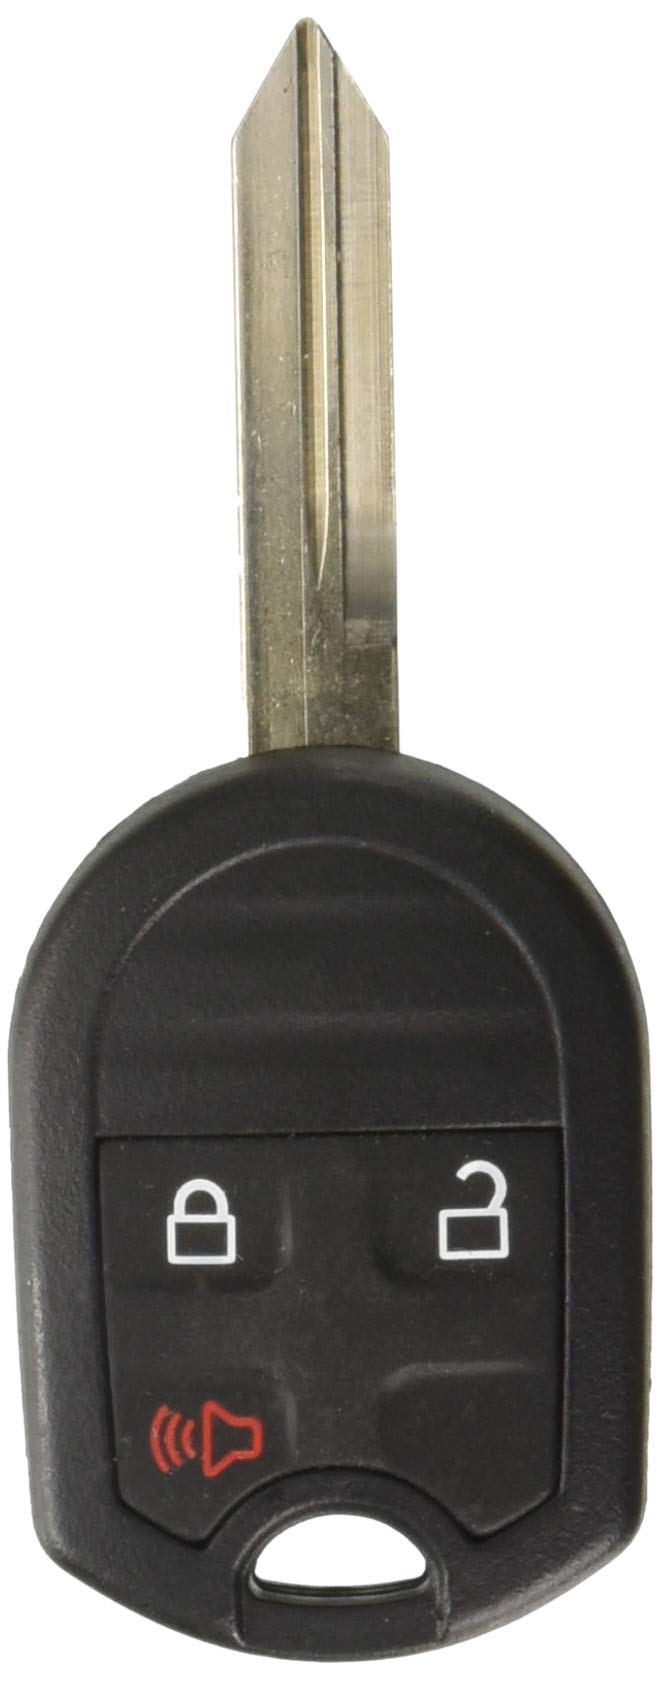 Pack of 2 KeylessOption Keyless Entry Remote Control Fob Uncut Blank Ignition Car Key Replacement for CWTWB1U793